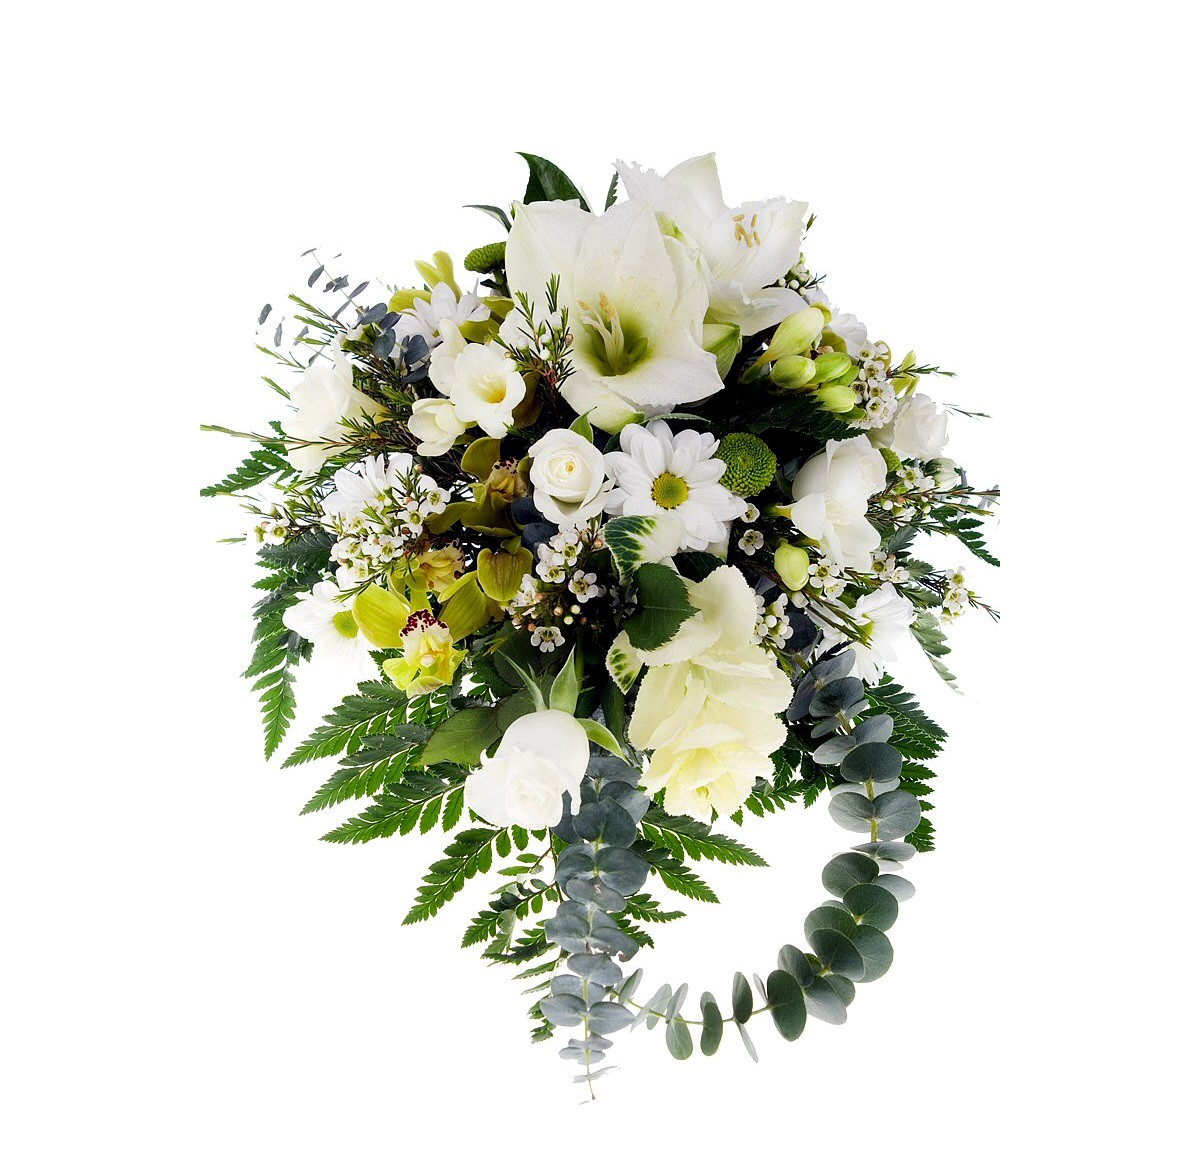 Funeral flowers tributes arrangements messages and more izmirmasajfo